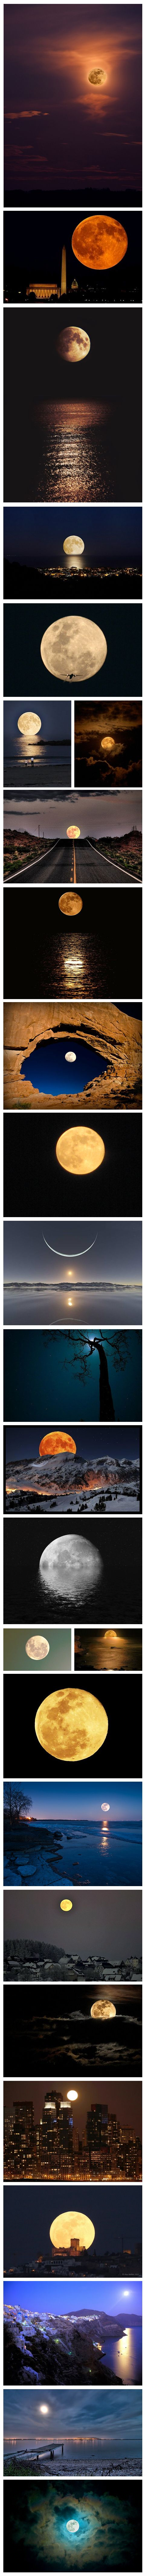 "A collection of the best Lunar images, inspired by the ""Supermoon"" of May 5, 2012."